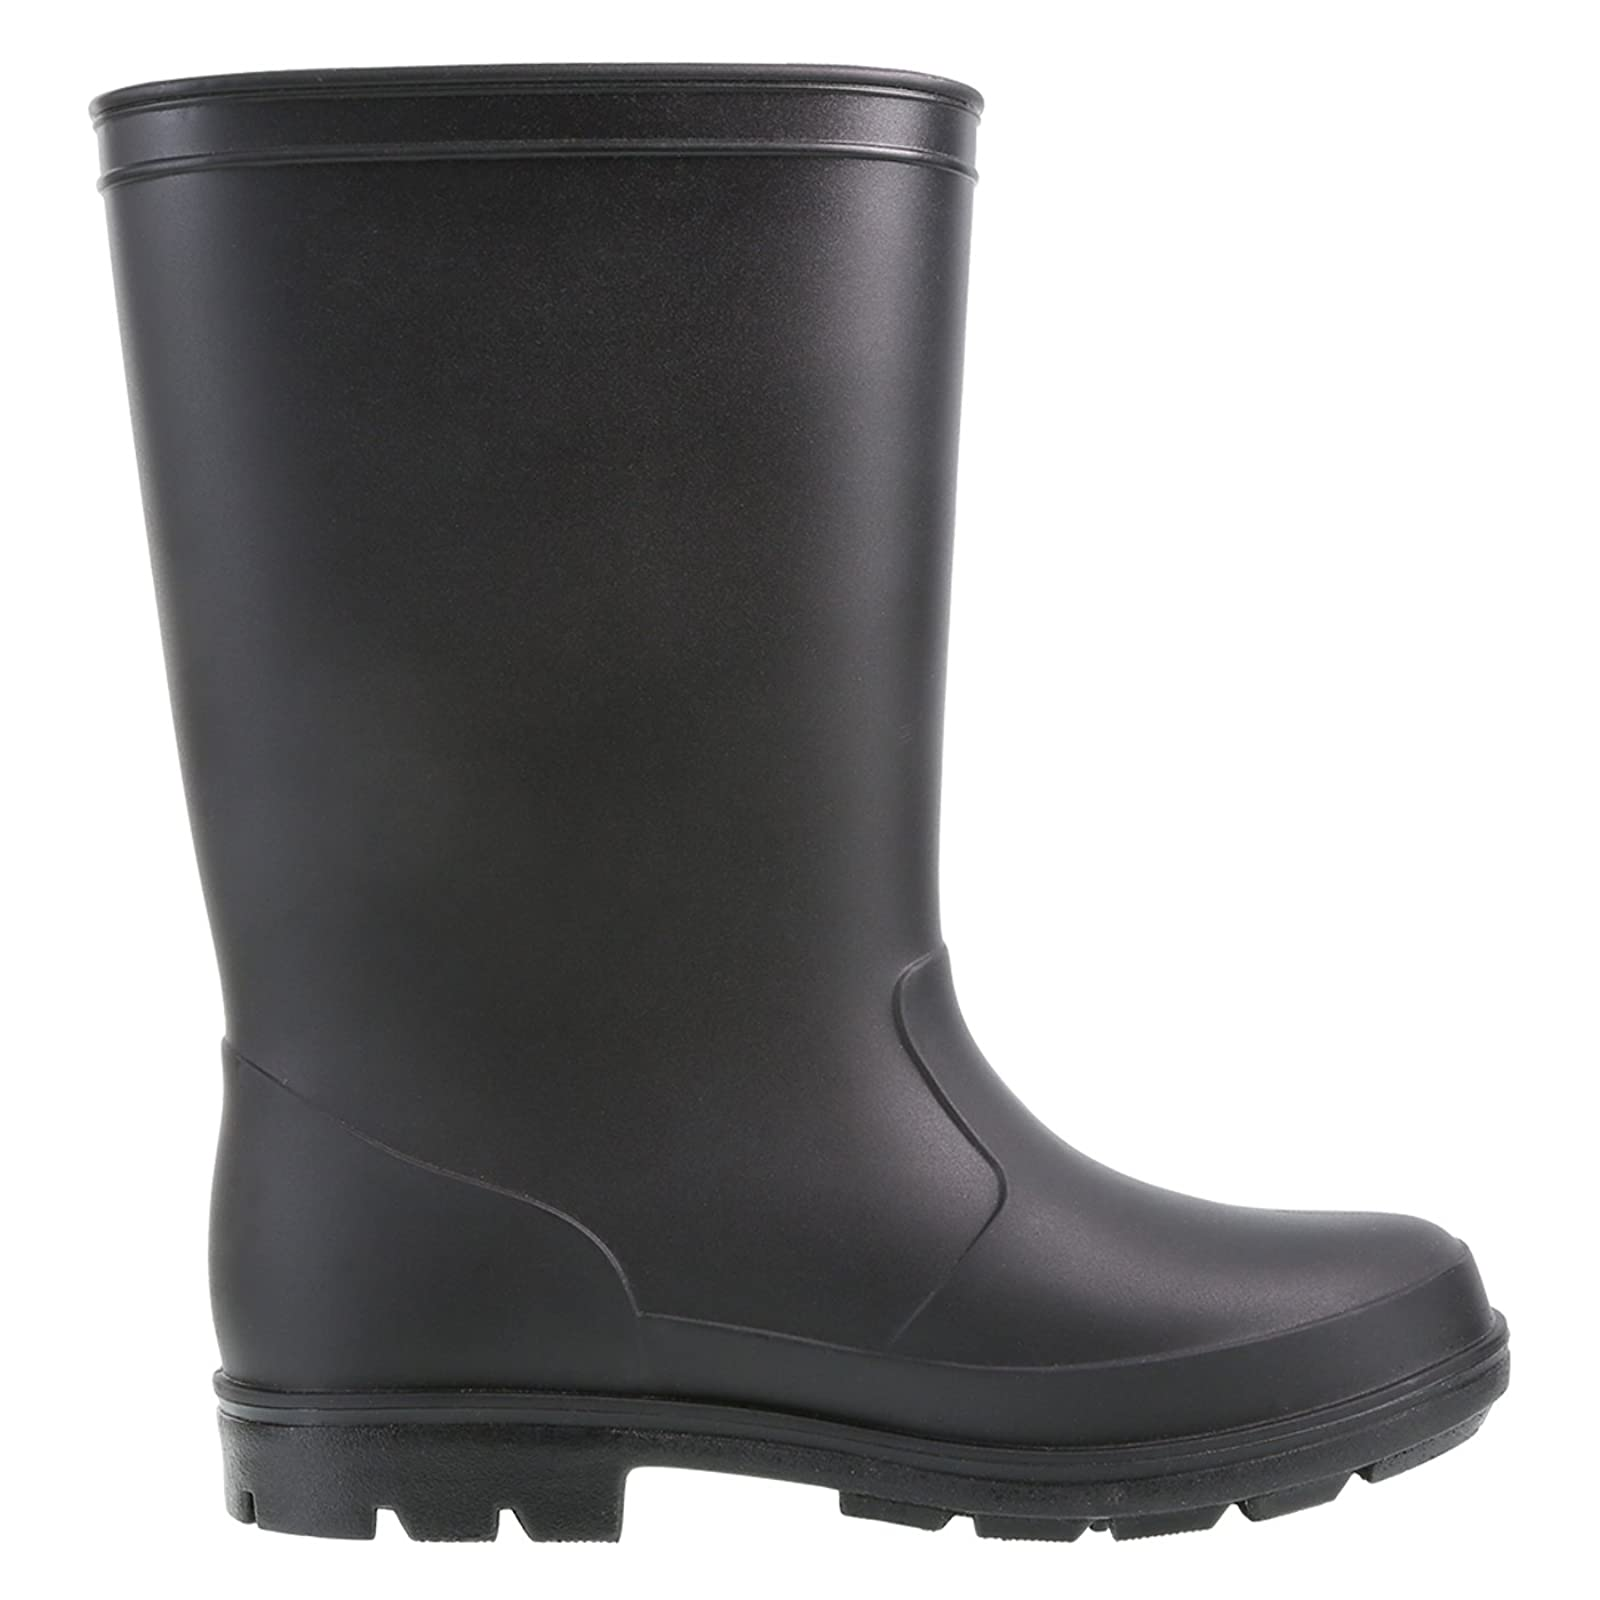 Rugged Outback Black Kids' Solid Rain Boots 174112010 - 1